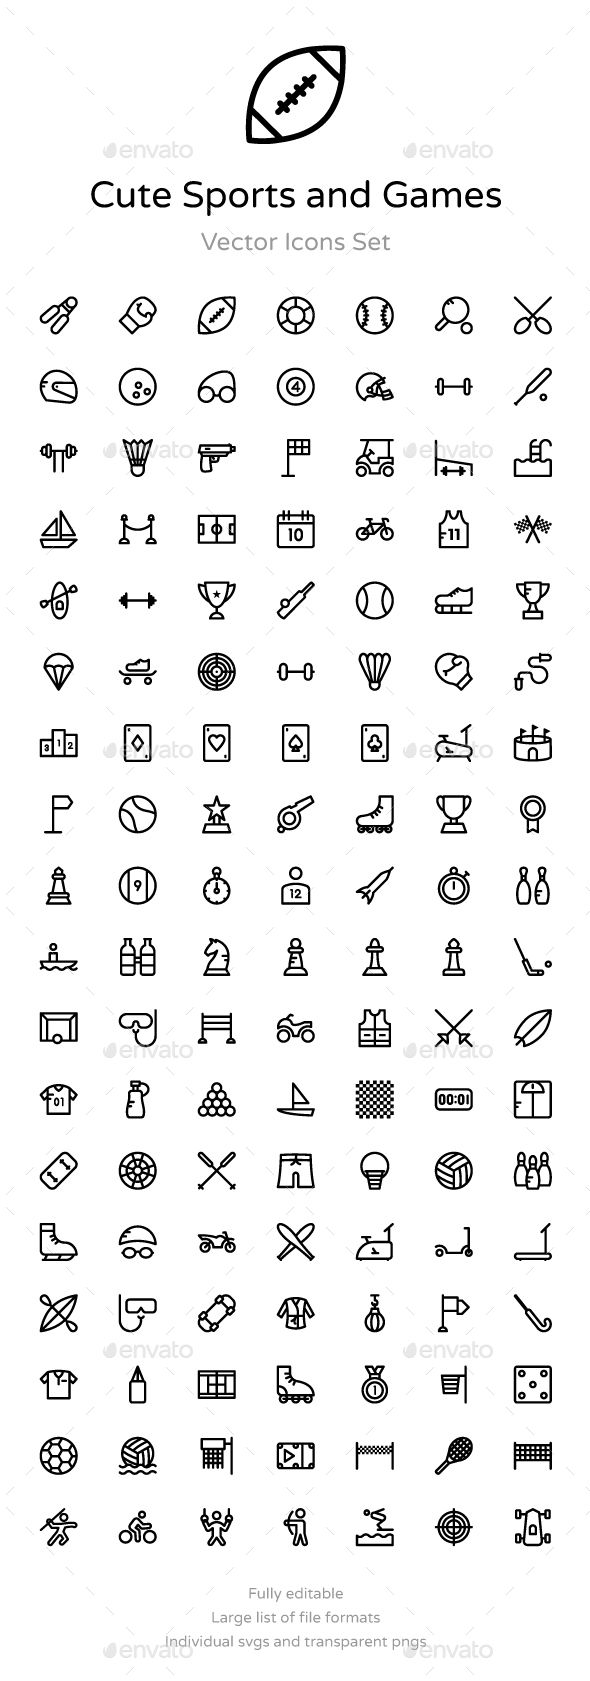 125+ Cute Sports and Games Icons — Vector EPS #tennis #boxing • Download ➝ https://graphicriver.net/item/125-cute-sports-and-games-icons/19191541?ref=pxcr